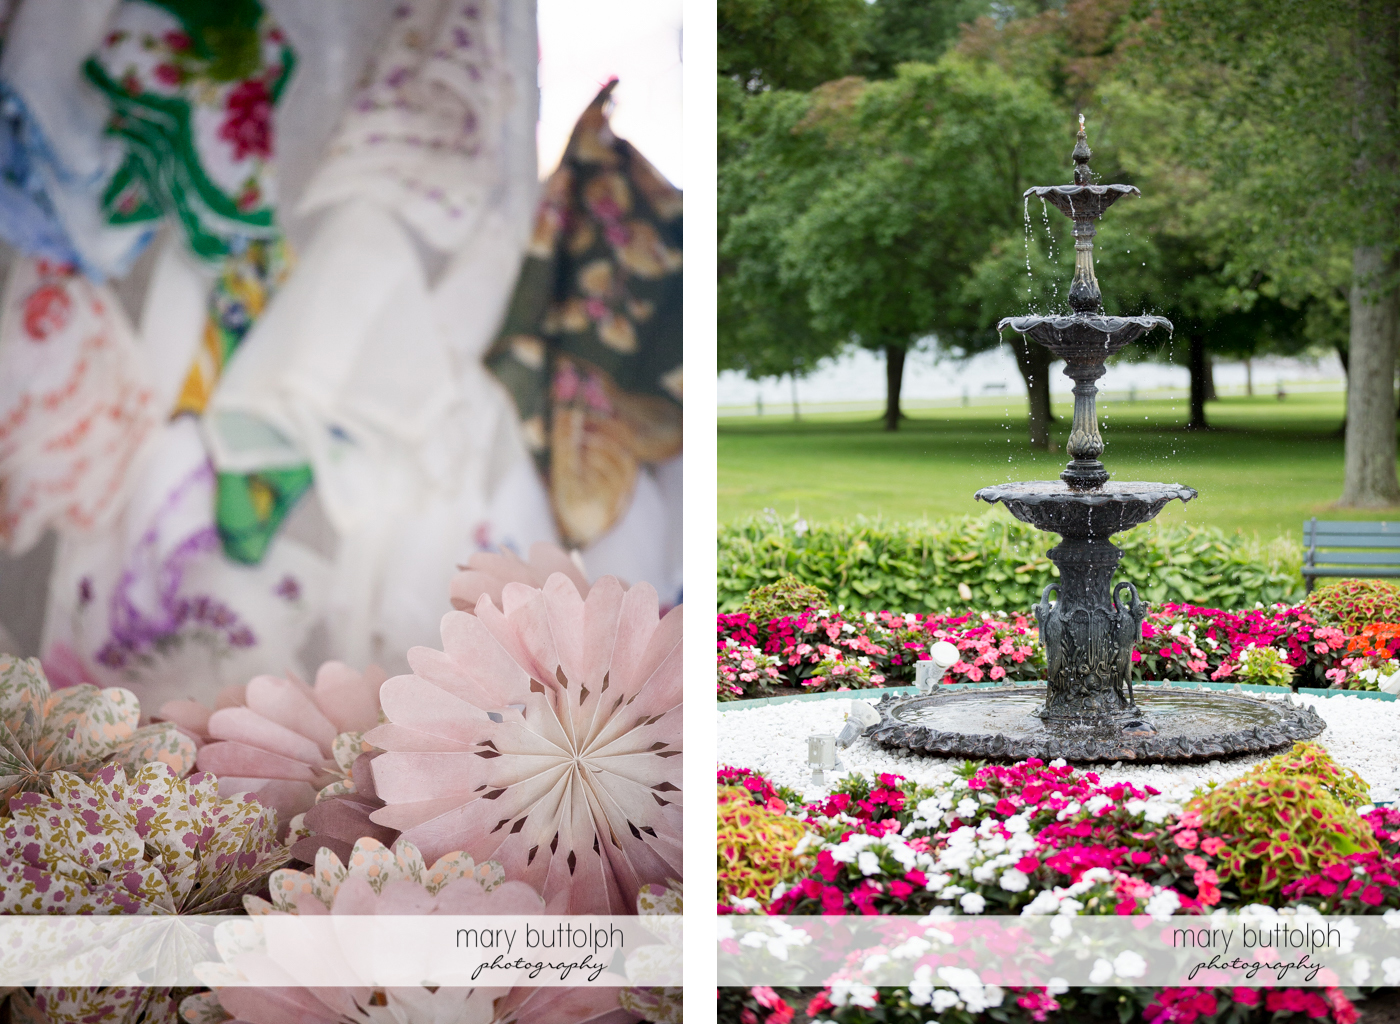 Beautiful flowers surround the fountain in the garden at Emerson Park Pavilion Wedding